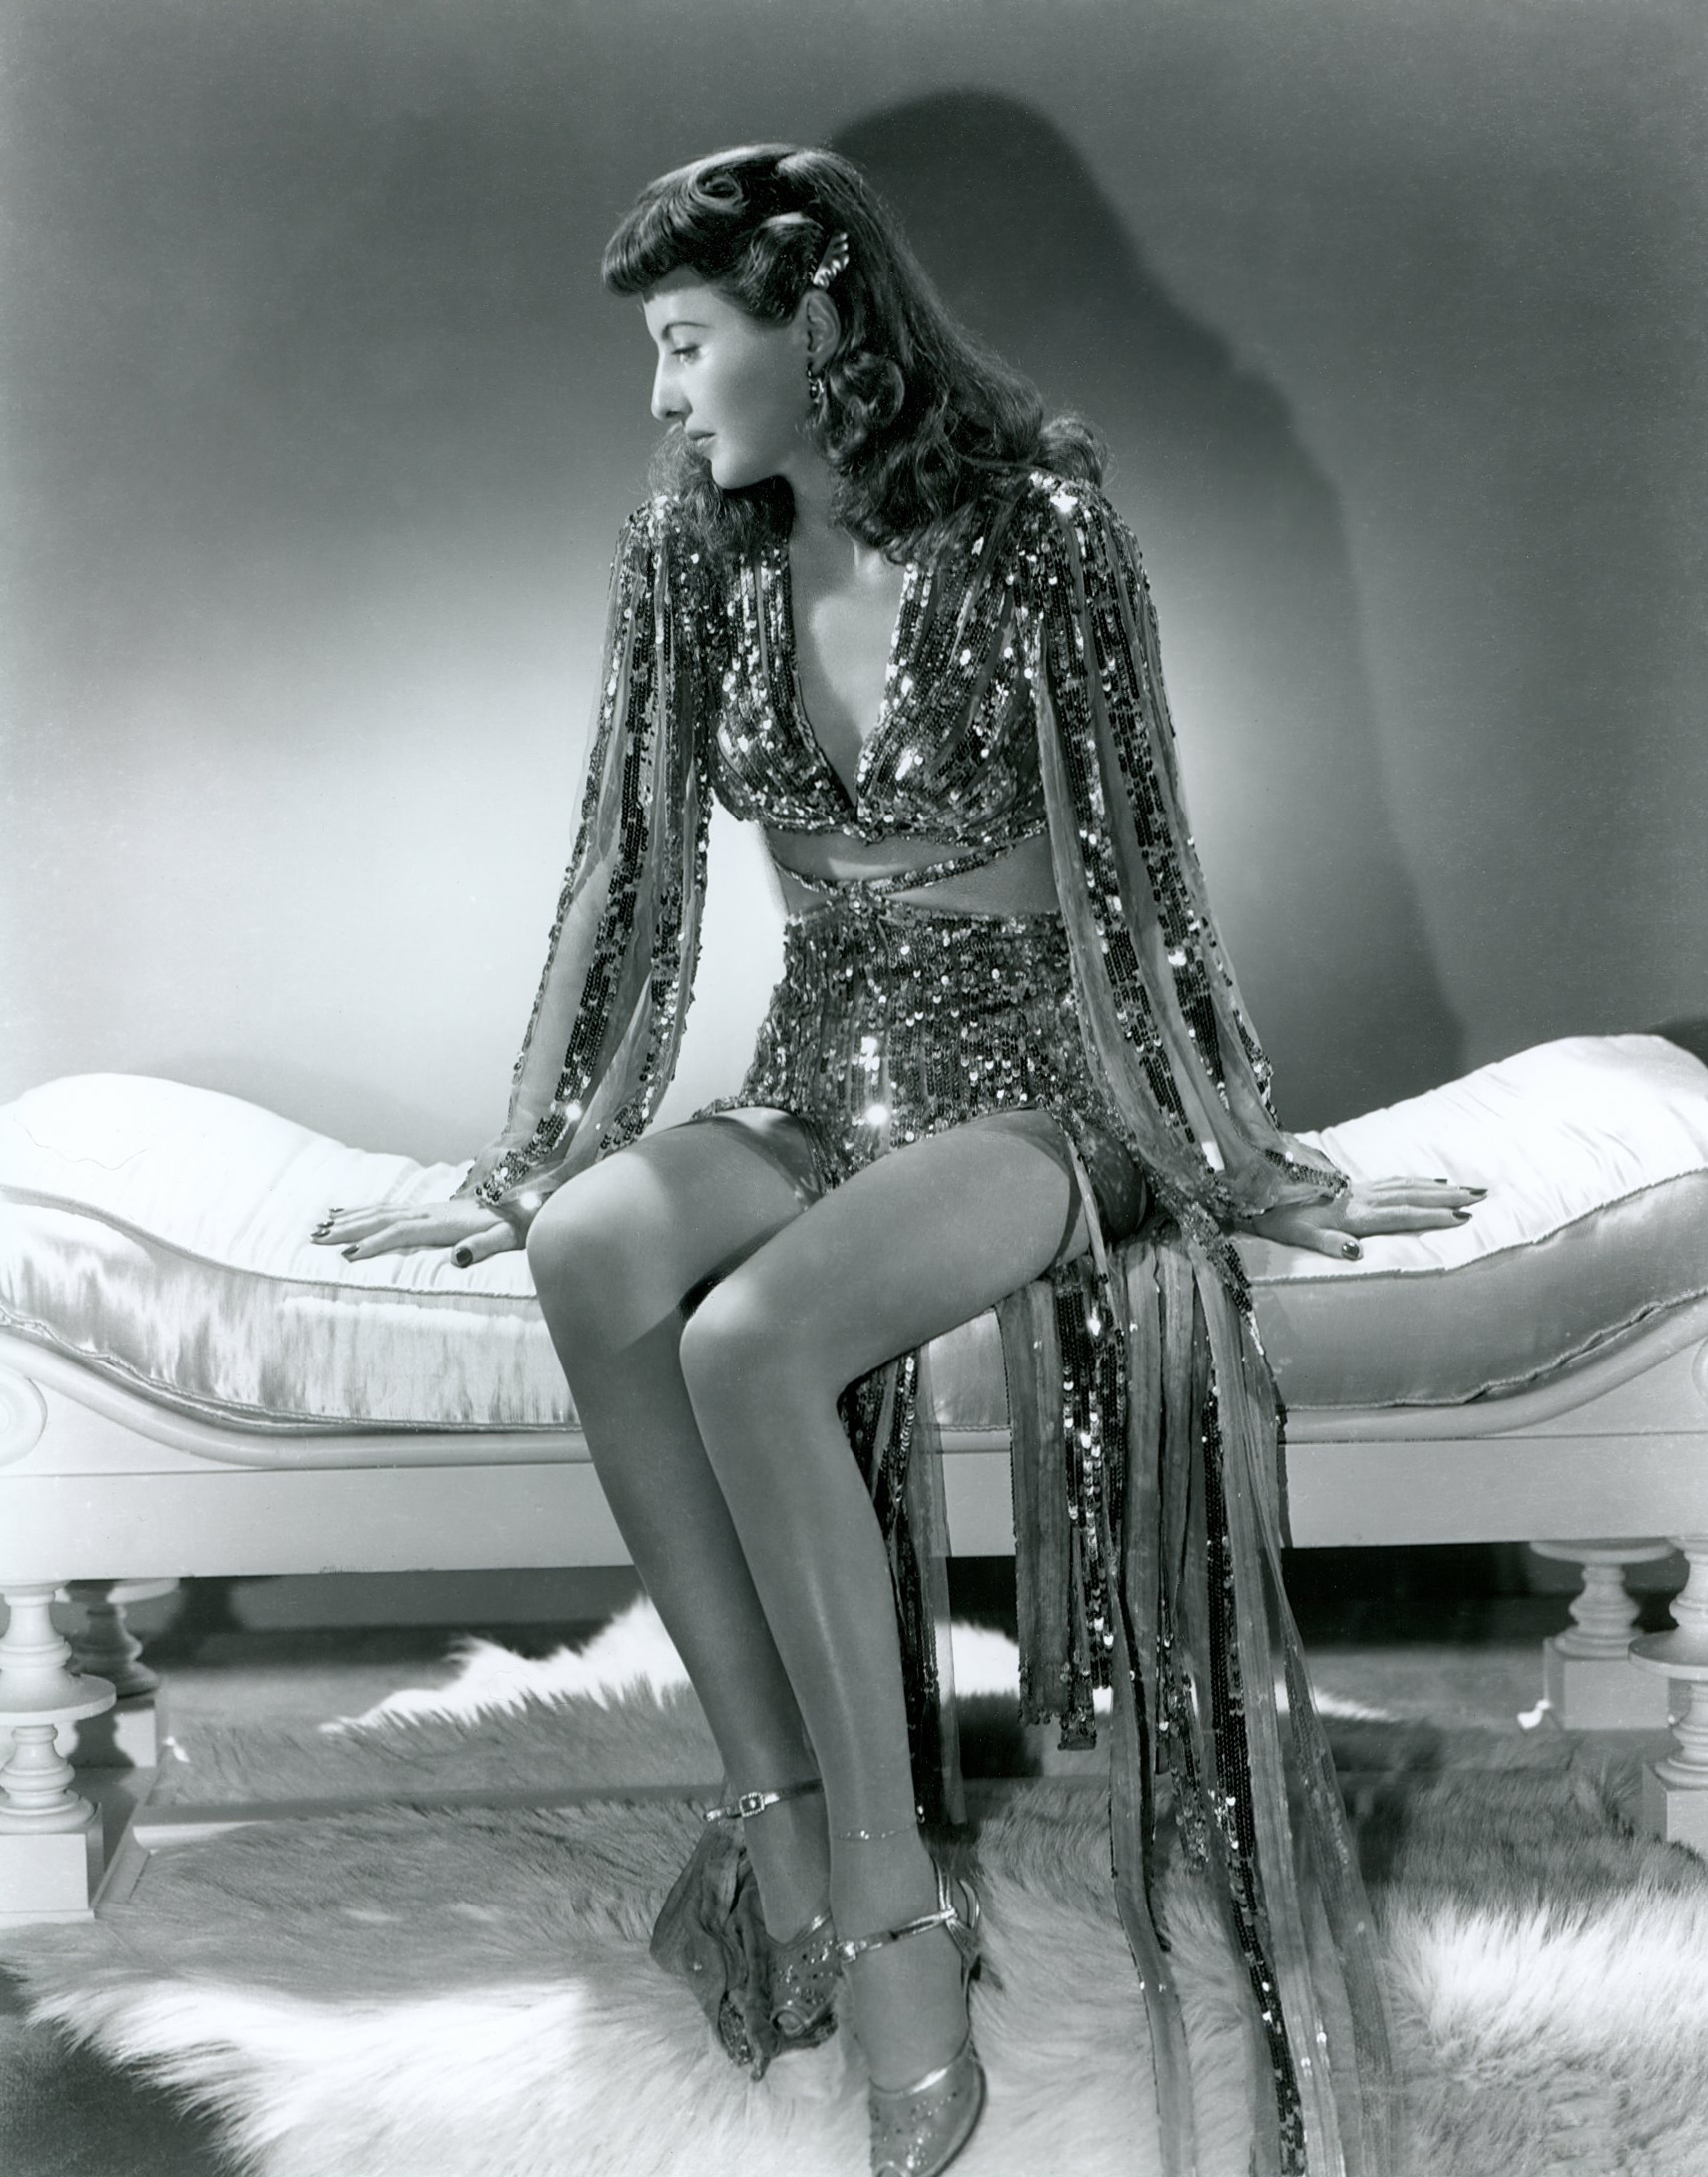 http://www.doctormacro.com/Images/Stanwyck,%20Barbara/Annex/Annex%20-%20Stanwyck,%20Barbara%20(Ball%20of%20Fire)_03.jpg